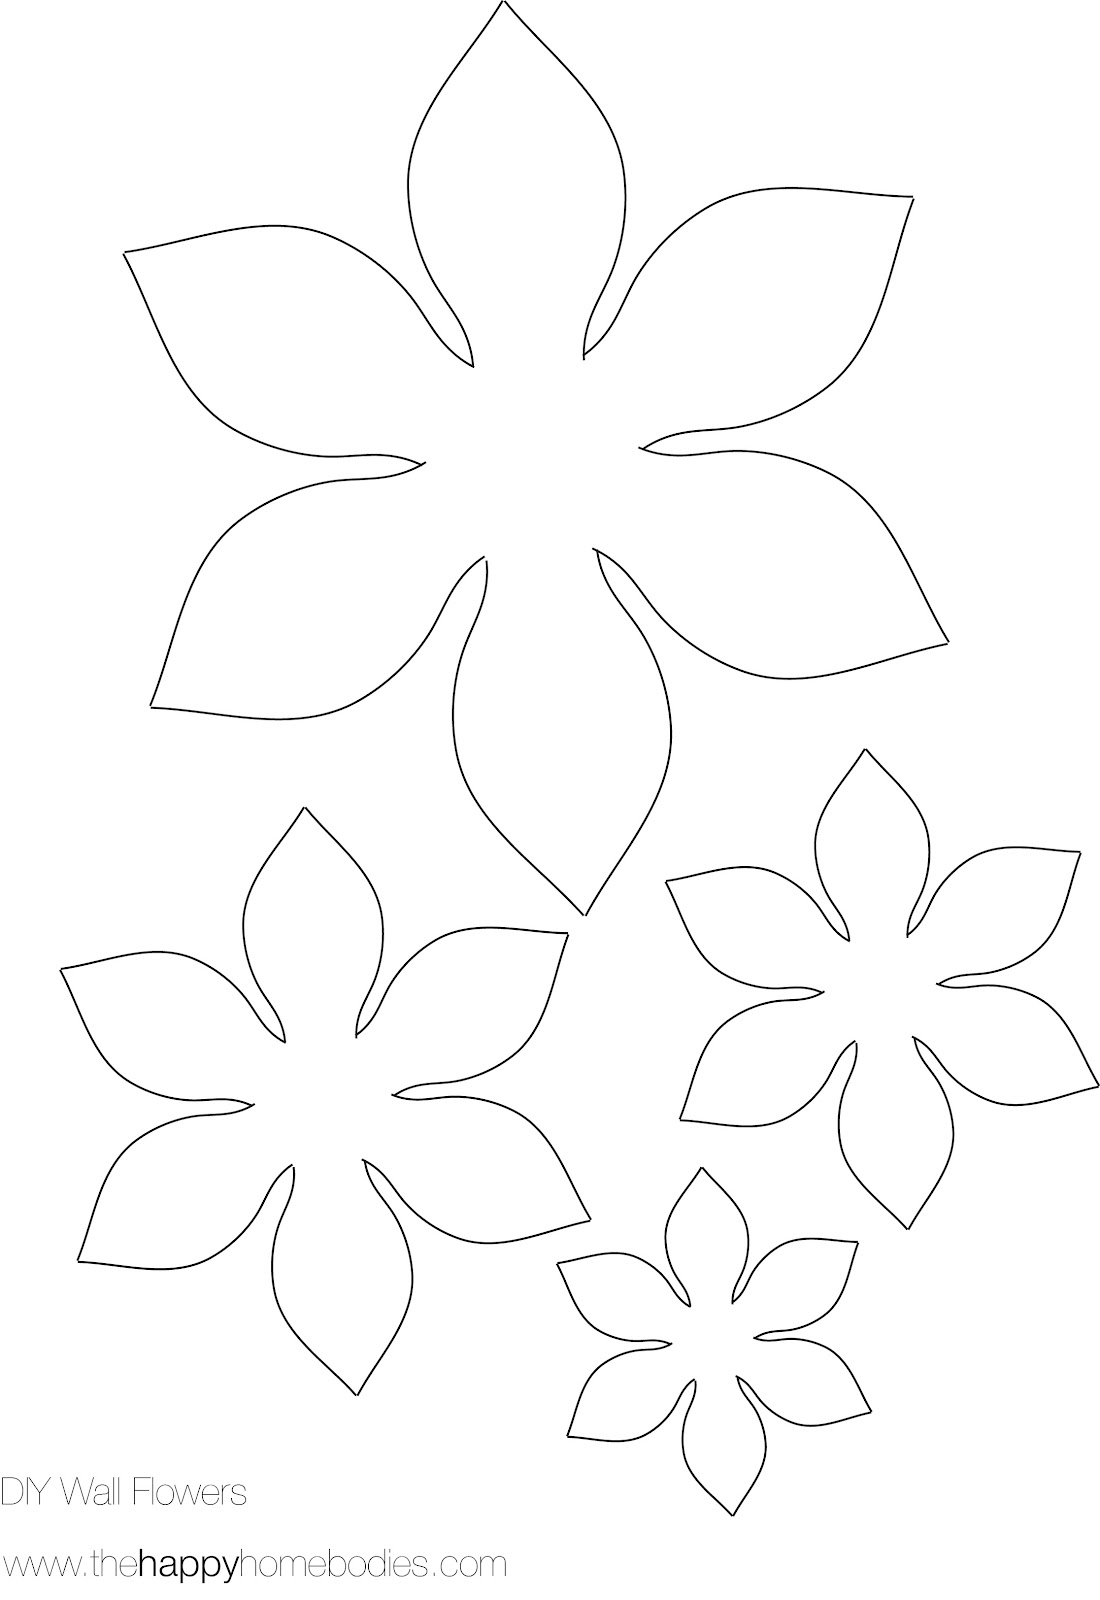 Printable photos of flowers banner stock 17 Best images about Paper flowers on Pinterest | Paper folding ... banner stock